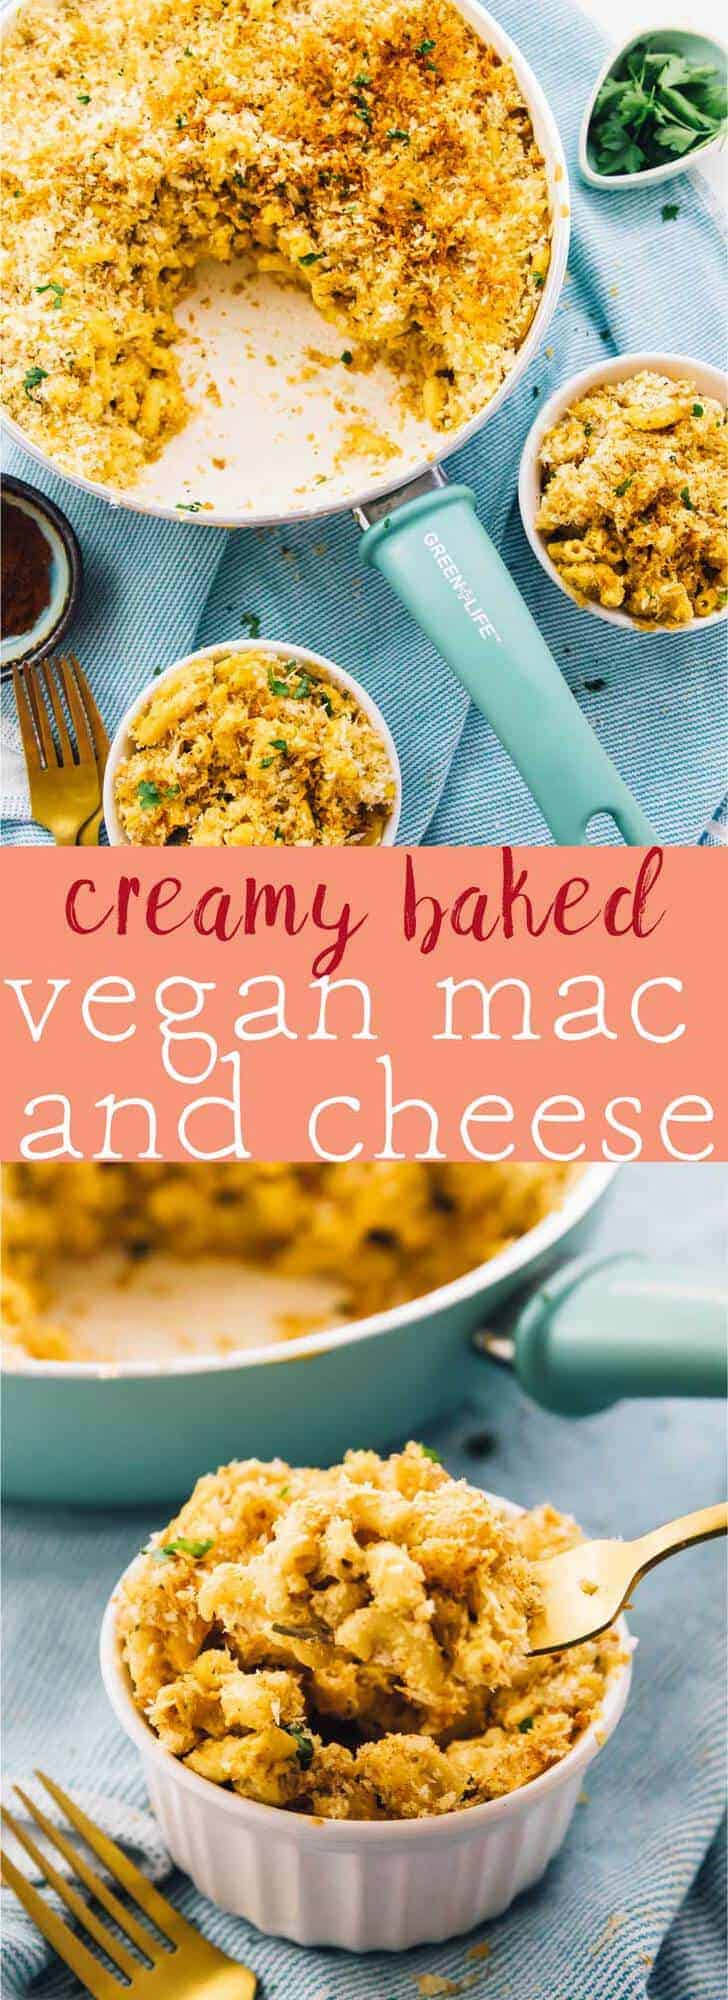 This Creamy Baked Vegan Mac & Cheese is undeniably divine! Made with an amazing, cashew based 'cheese' sauce, it's the perfect addition to any meal! https://jessicainthekitchen.com